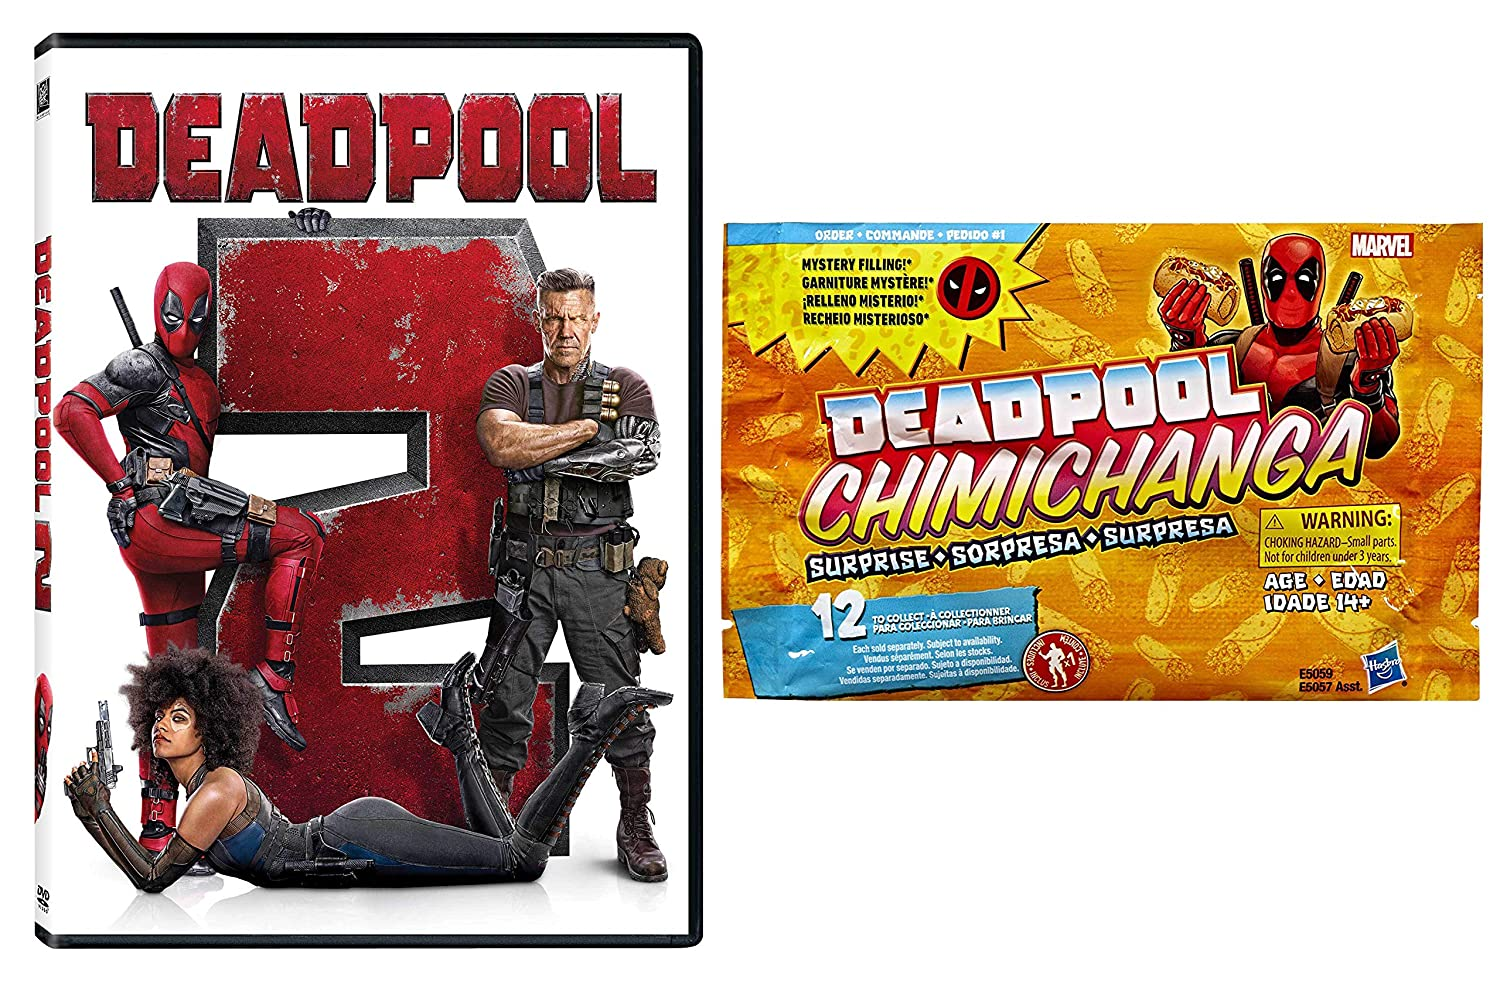 Who's Driving That Food Truck??? :Deadpool 2 + Deadpool Chimichanga Surprise with Mystery Filling Figure (2 Piece Movie/ Figure Bundle) Ryan Reynolds